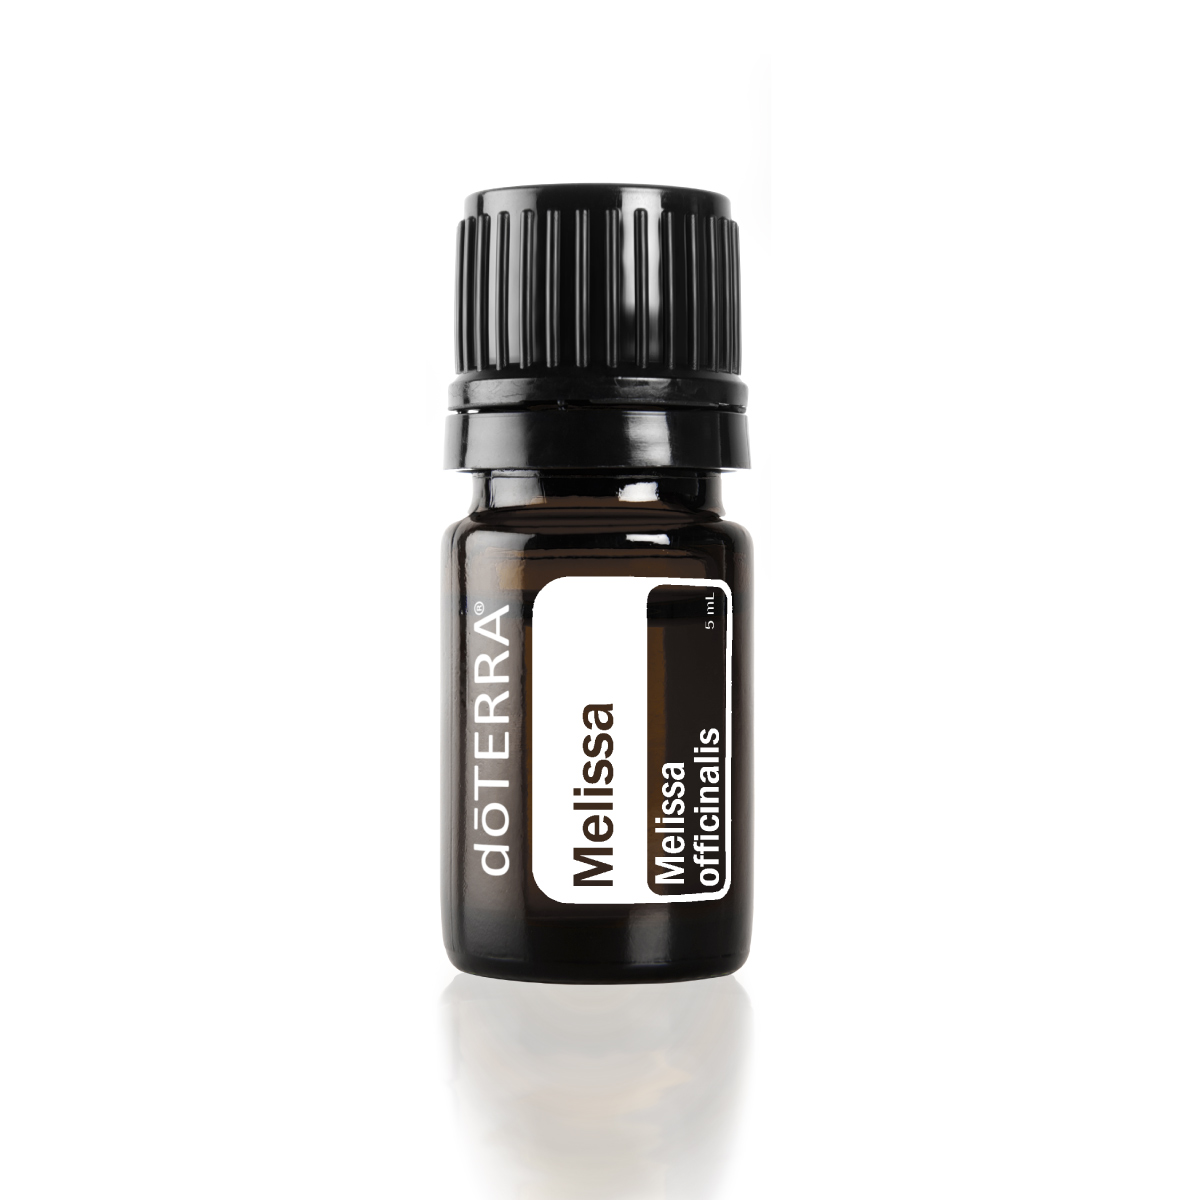 Bottle of doTERRA Melissa oil. What is Melissa essential oil used for? Melissa oil can be used to support a healthy immune system, calm tension and nerves, and promote a relaxing atmosphere.